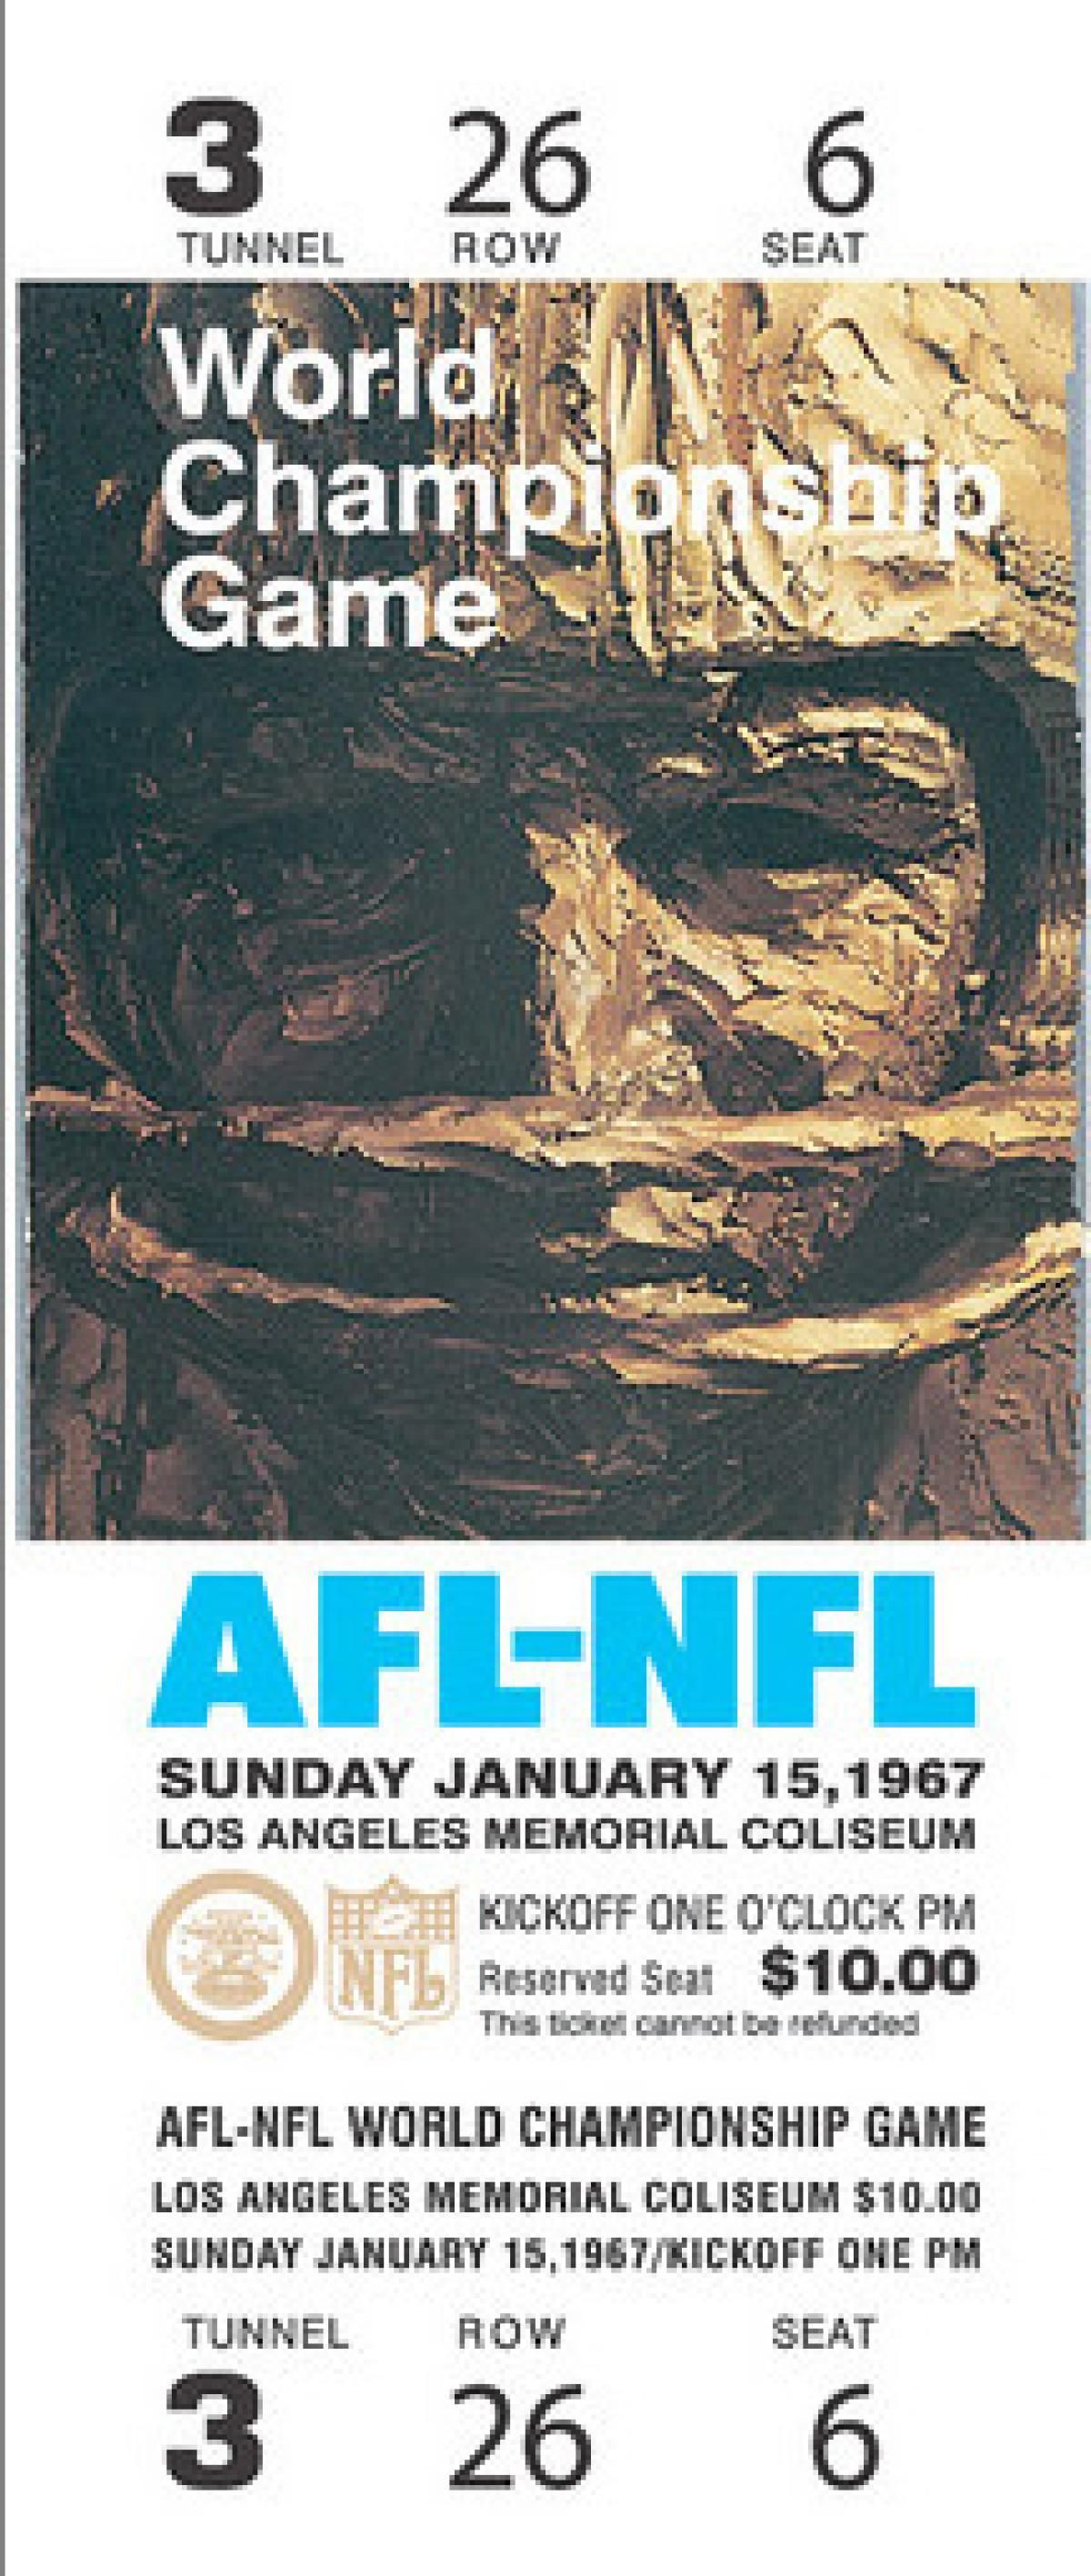 Vince Lombardi 1965 Green Bay Packers laminated schedule card